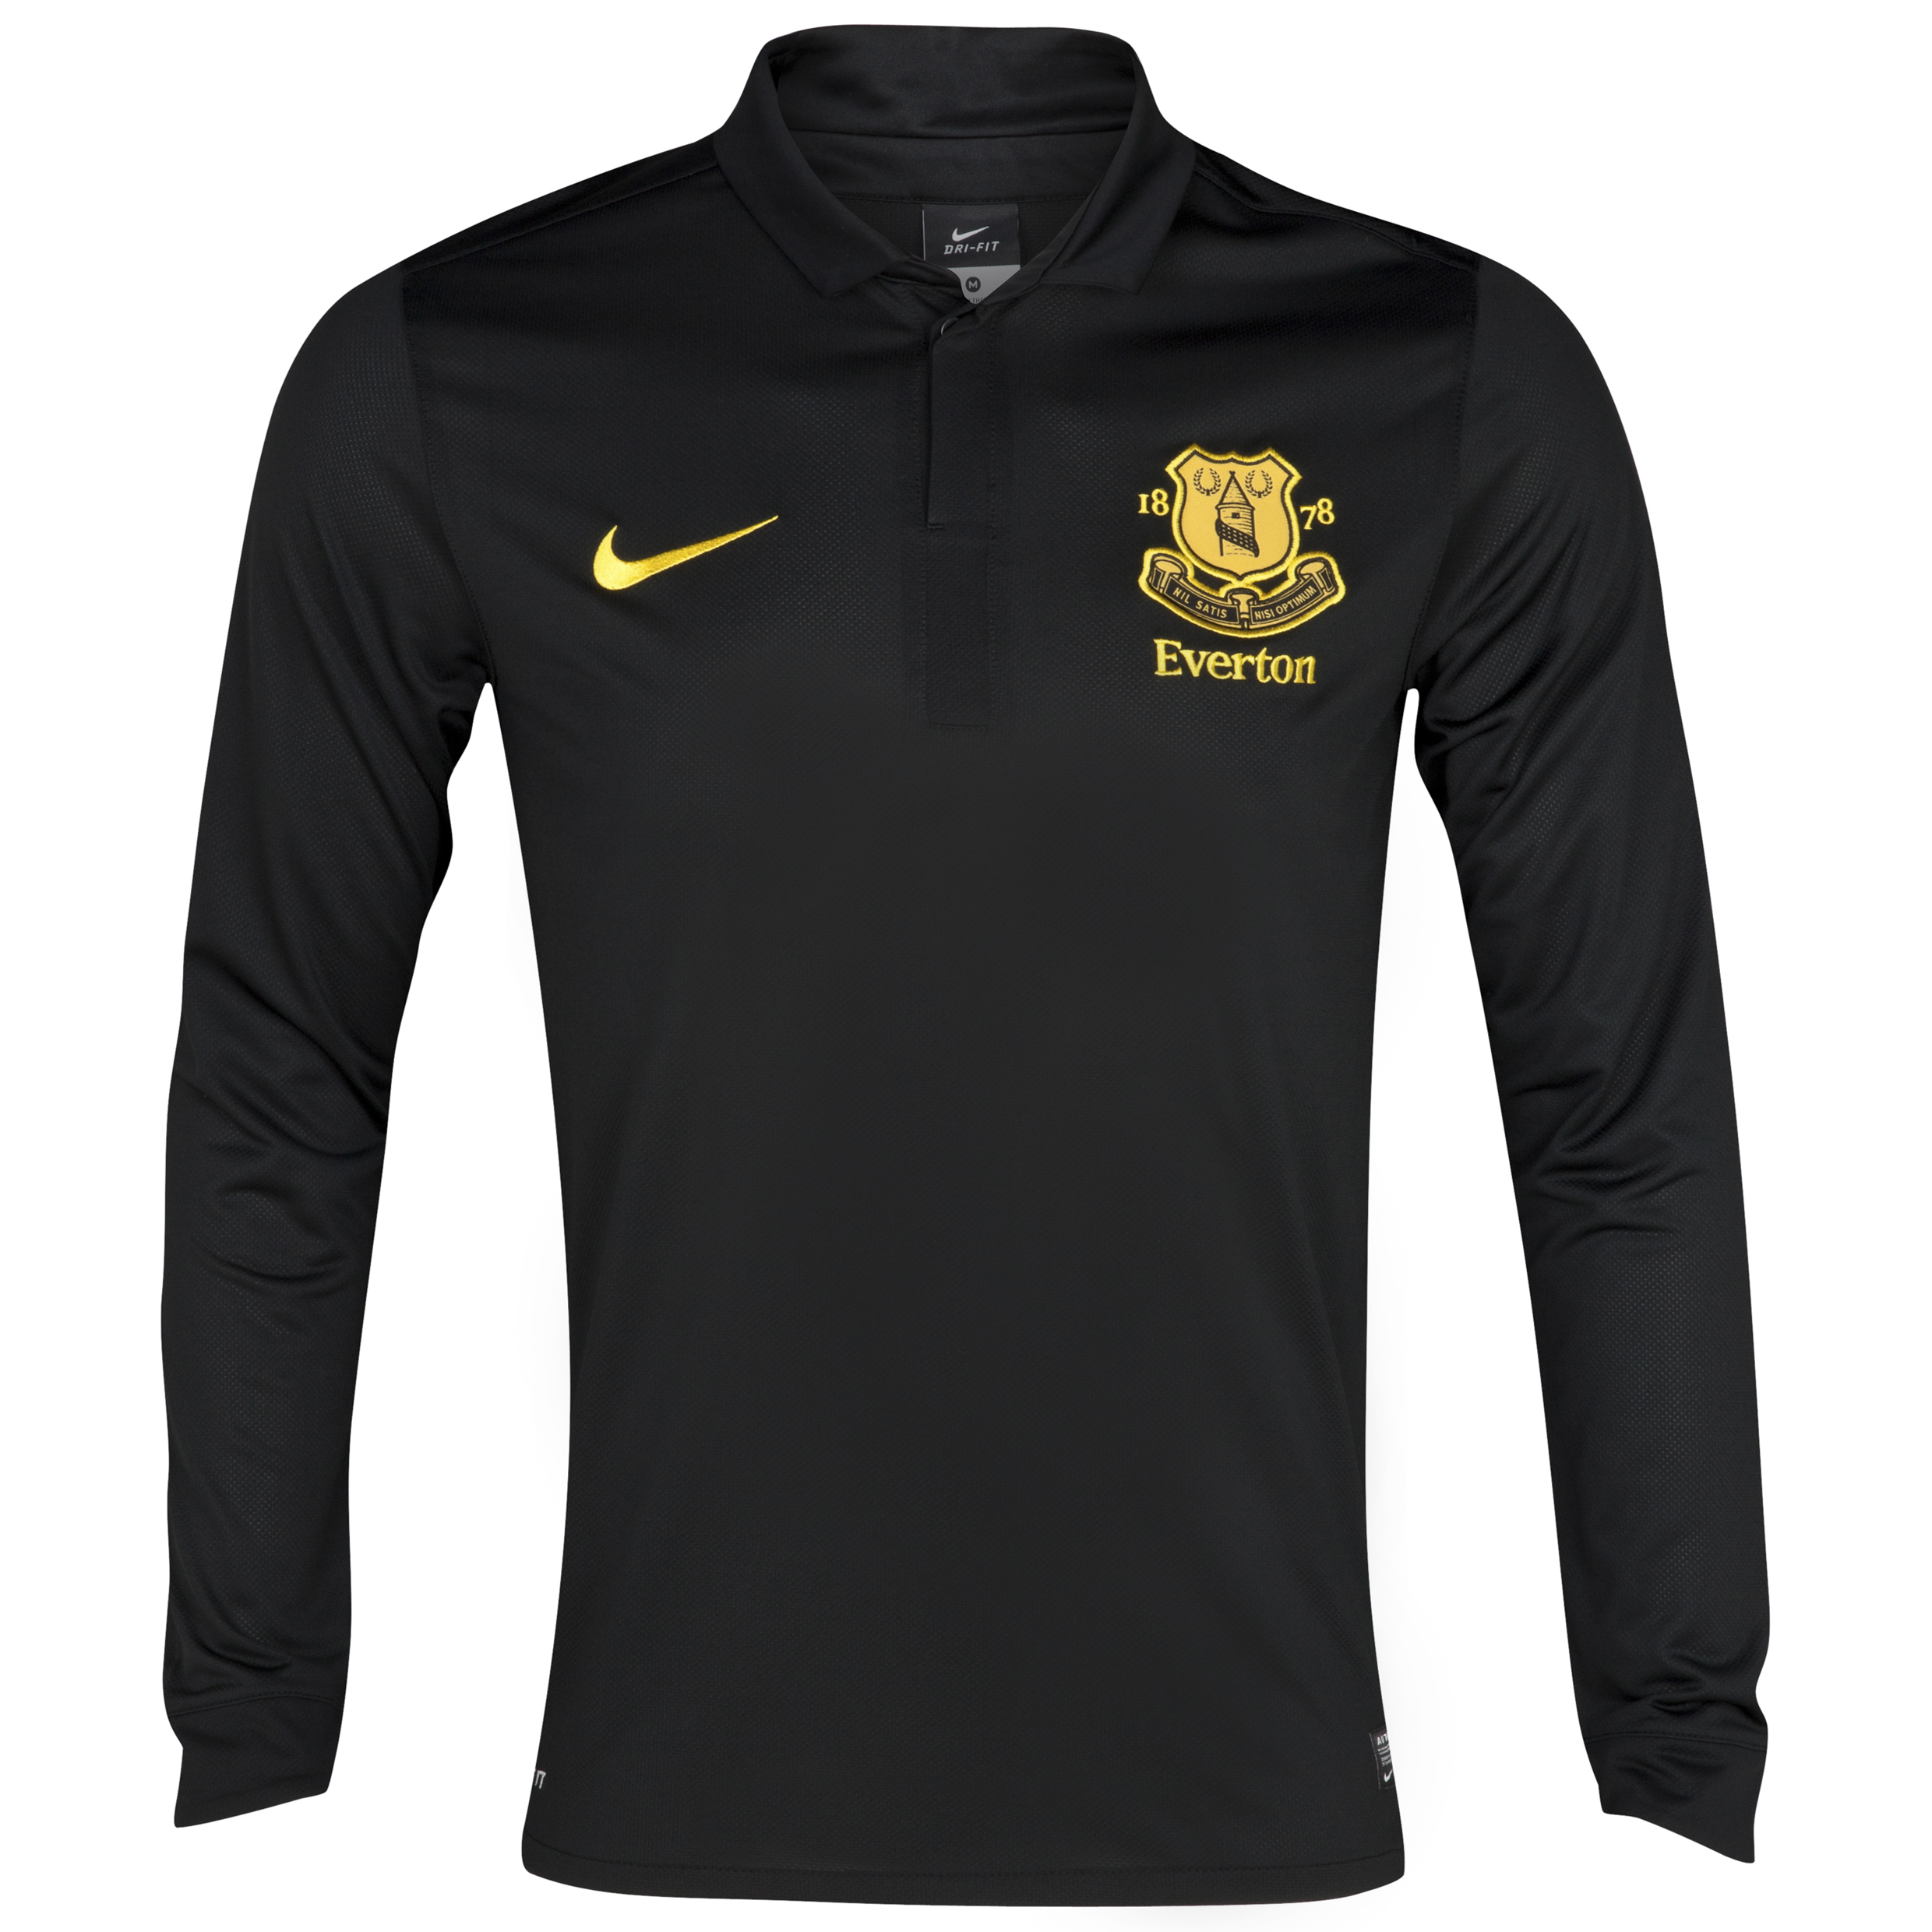 Everton Away Shirt 2012/13 - Long Sleeved - Junior